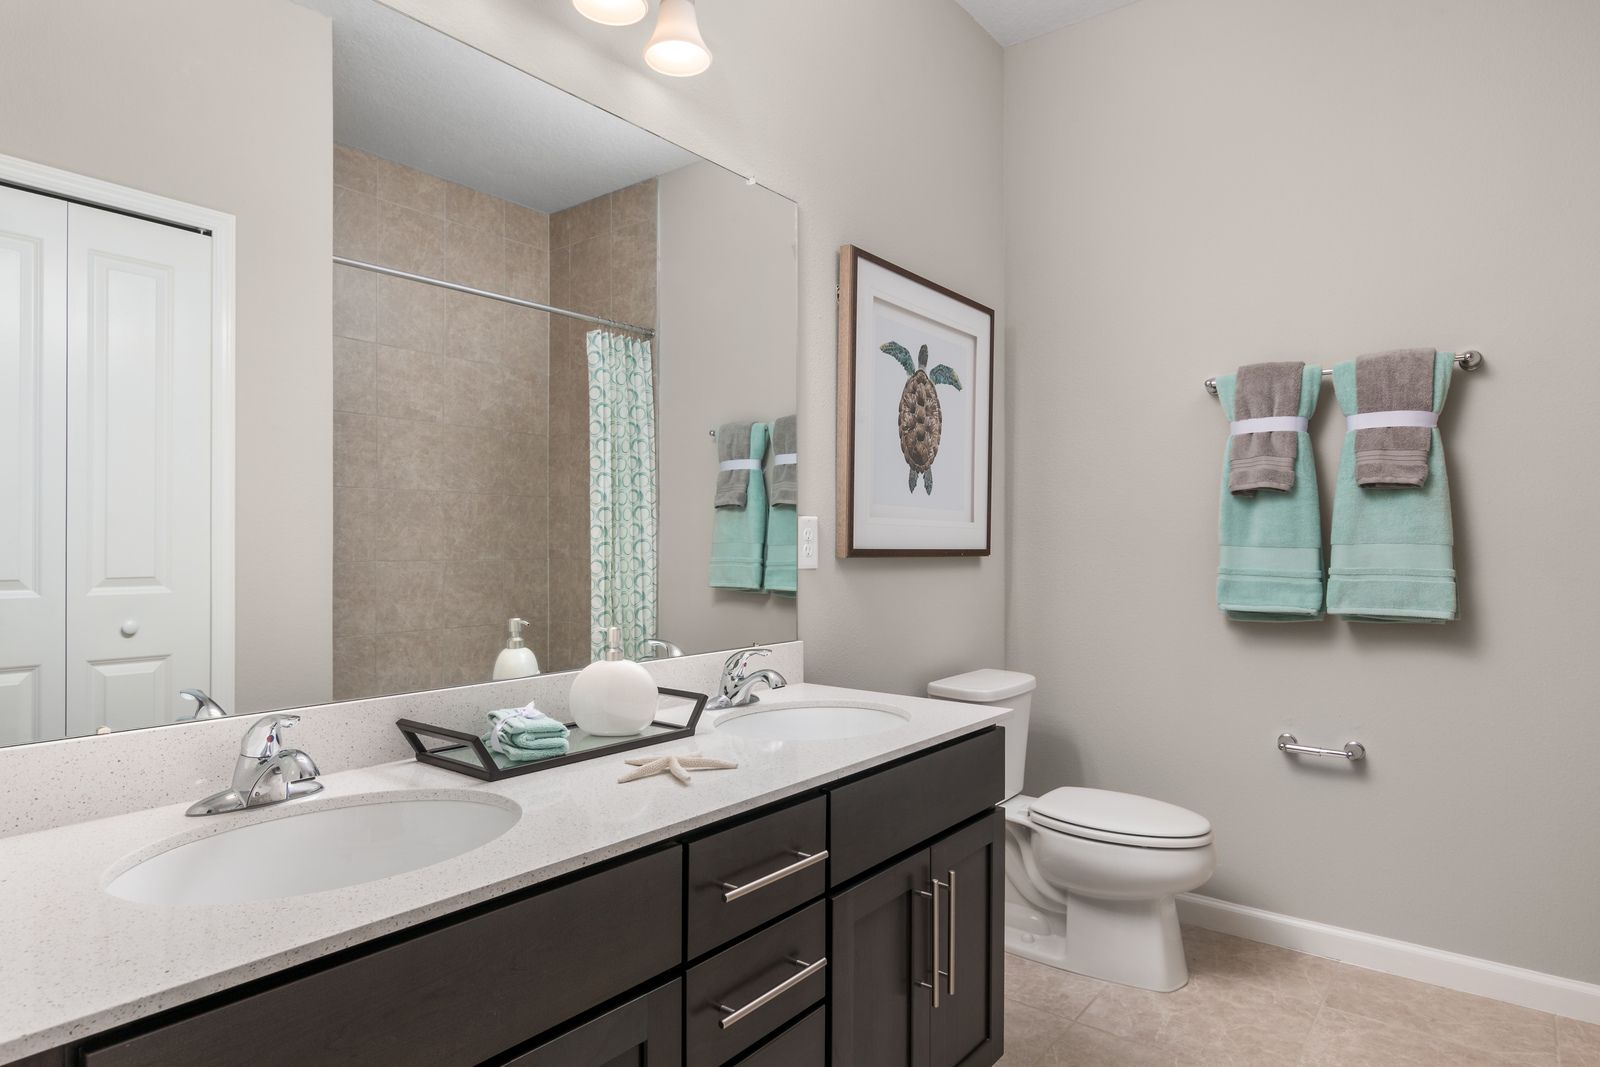 Bathroom featured in the Seagate By Ryan Homes in Tampa-St. Petersburg, FL